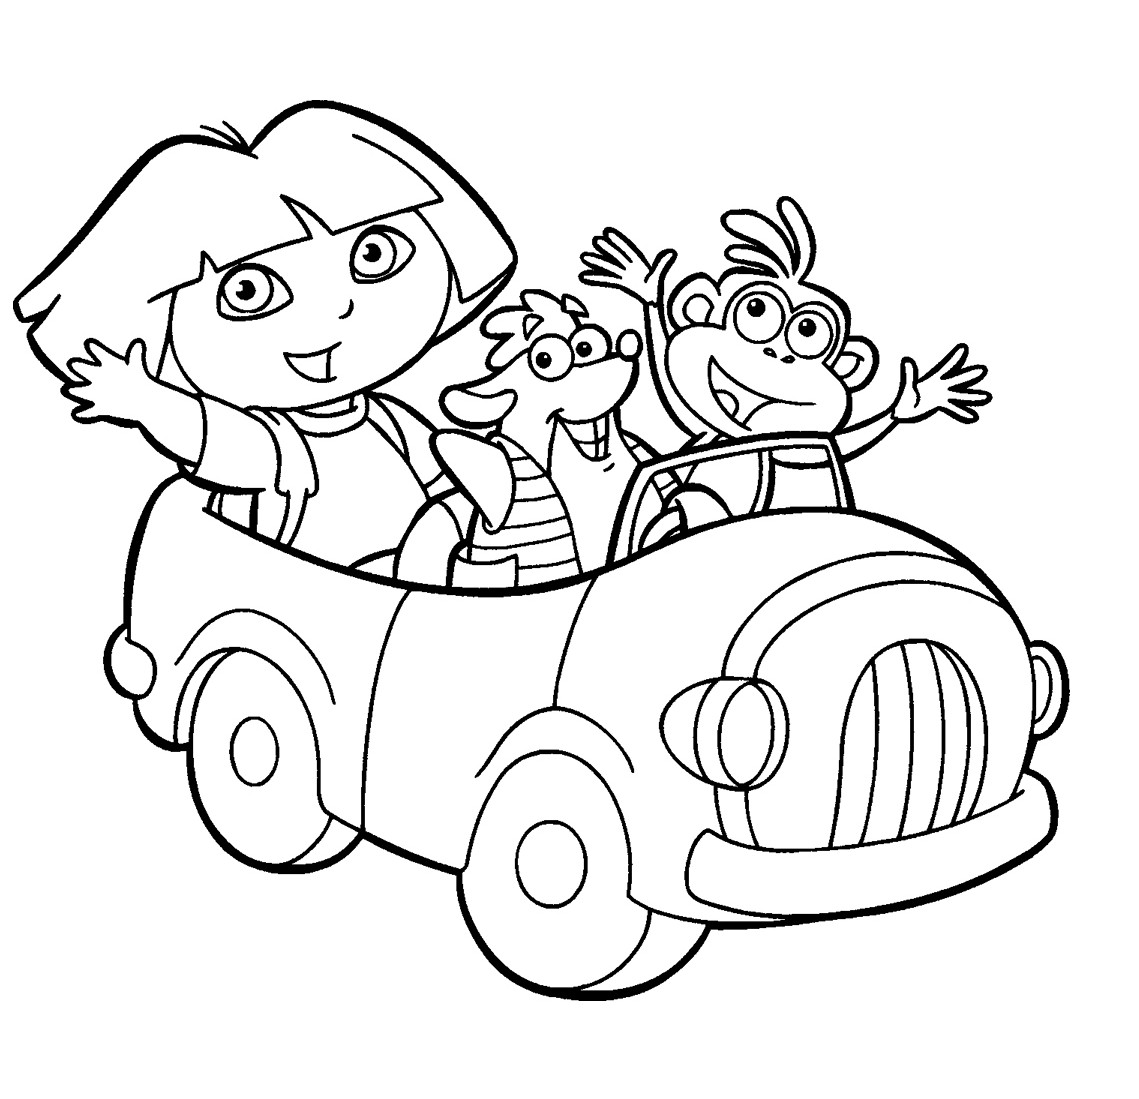 Dora Coloring Page Free Printable